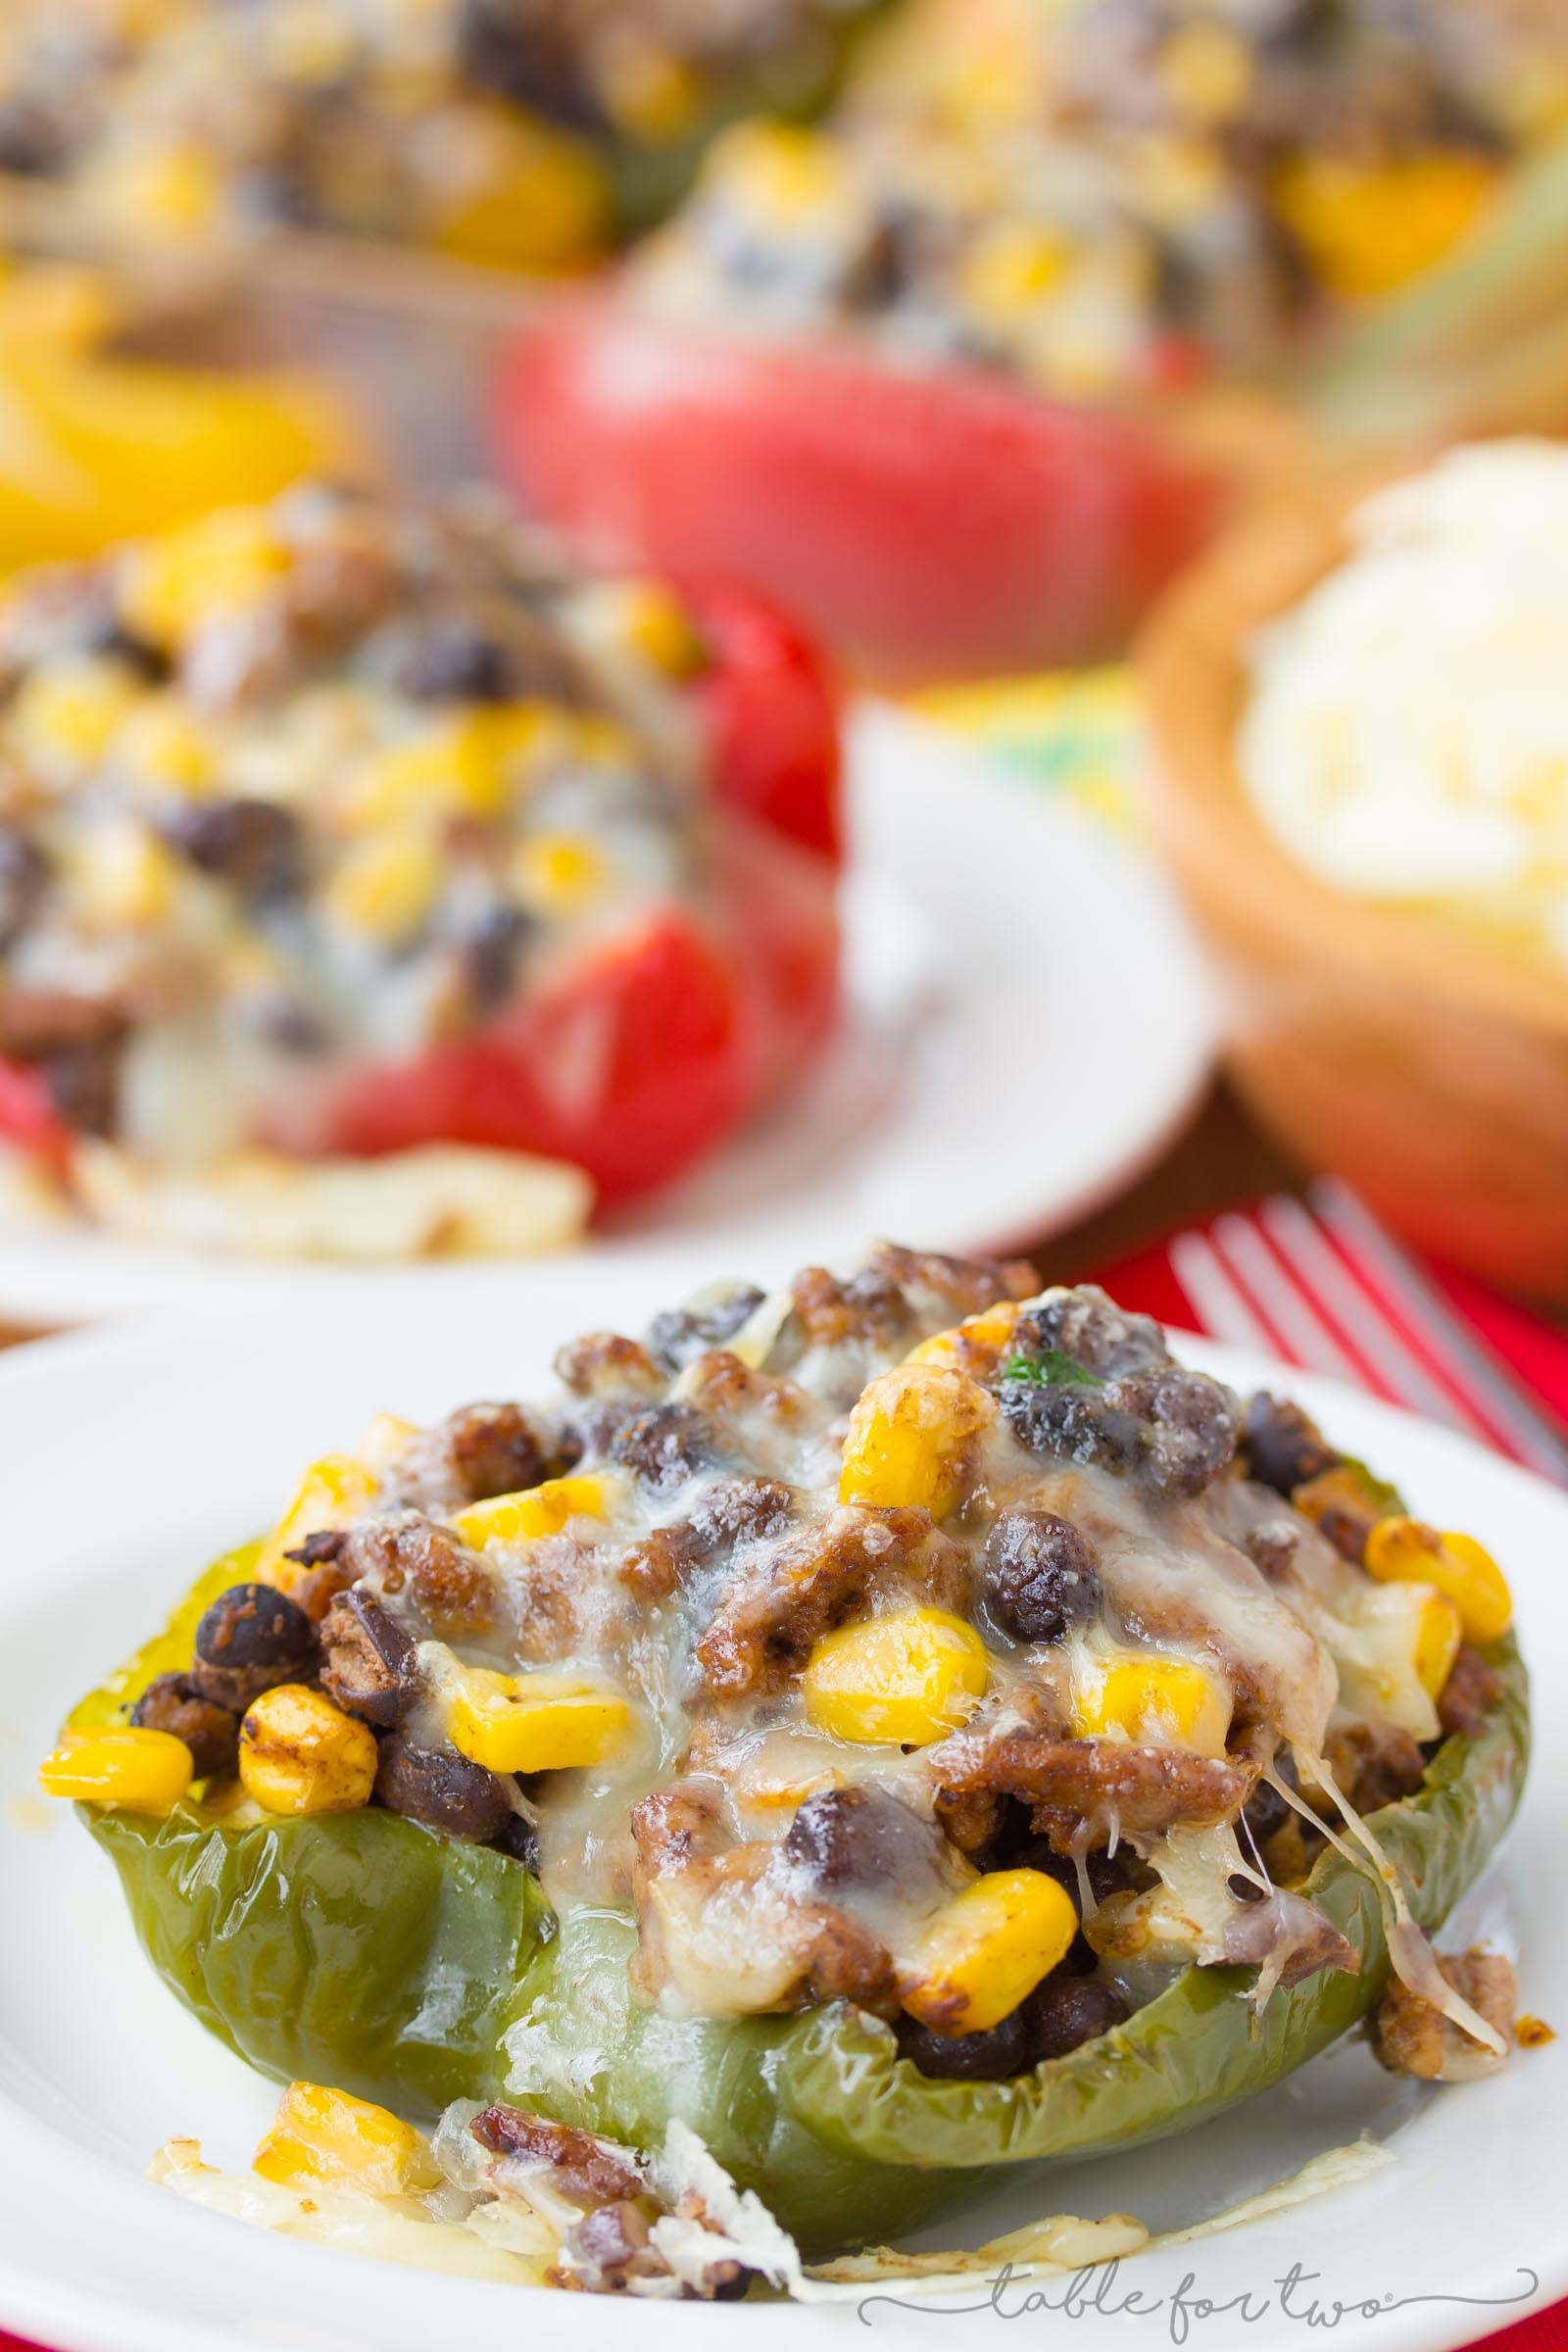 Stuffed peppers are a great healthy alternative to have a meal! Use the cavity of the peppers and stuff it to your hearts content with the ingredients that you love!